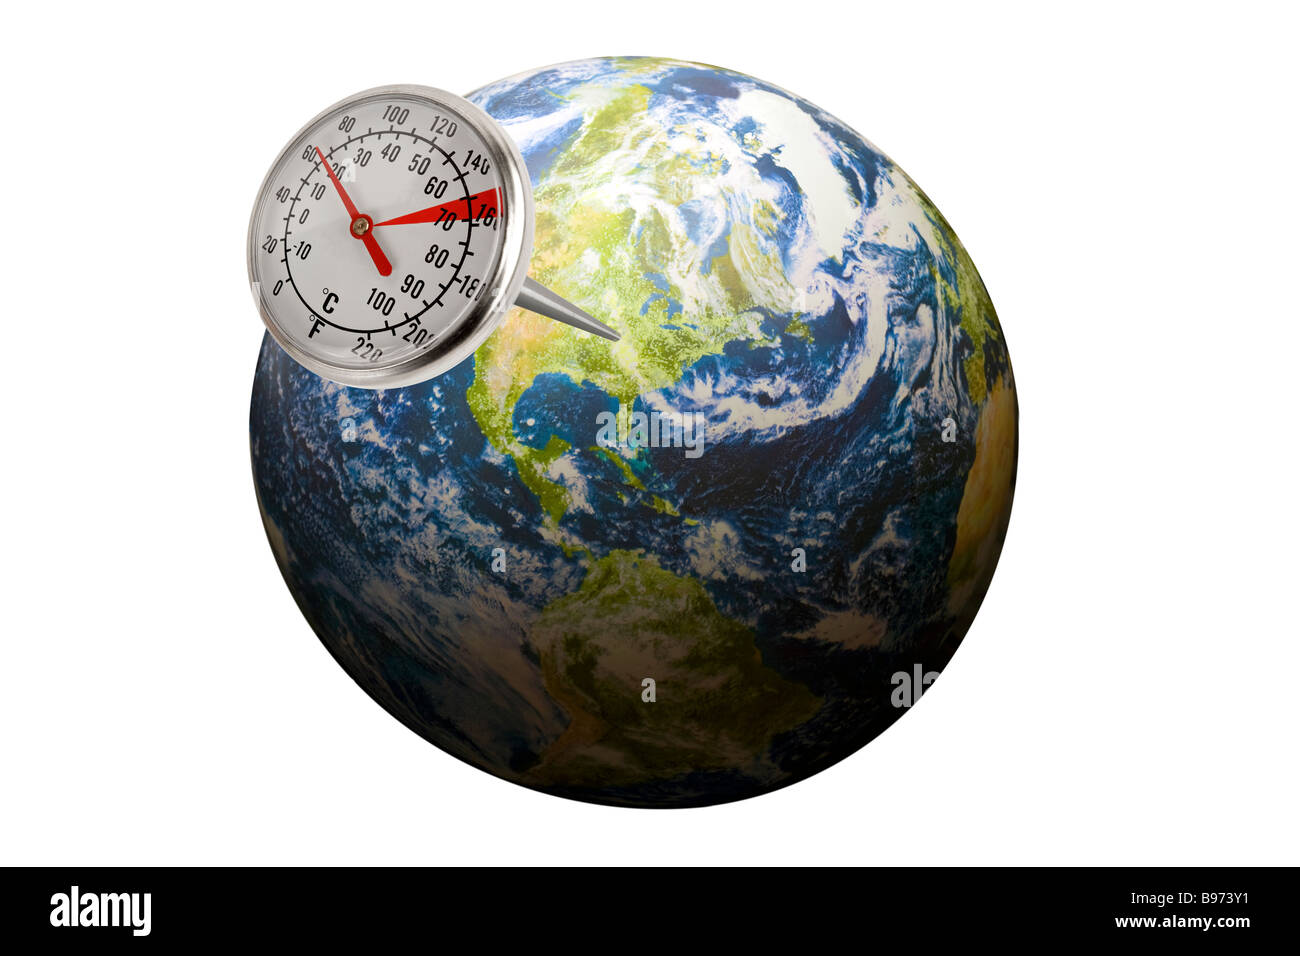 thermometer sticking out of planet earth depicting carbon emissions or a change in temperature of the planet - Stock Image